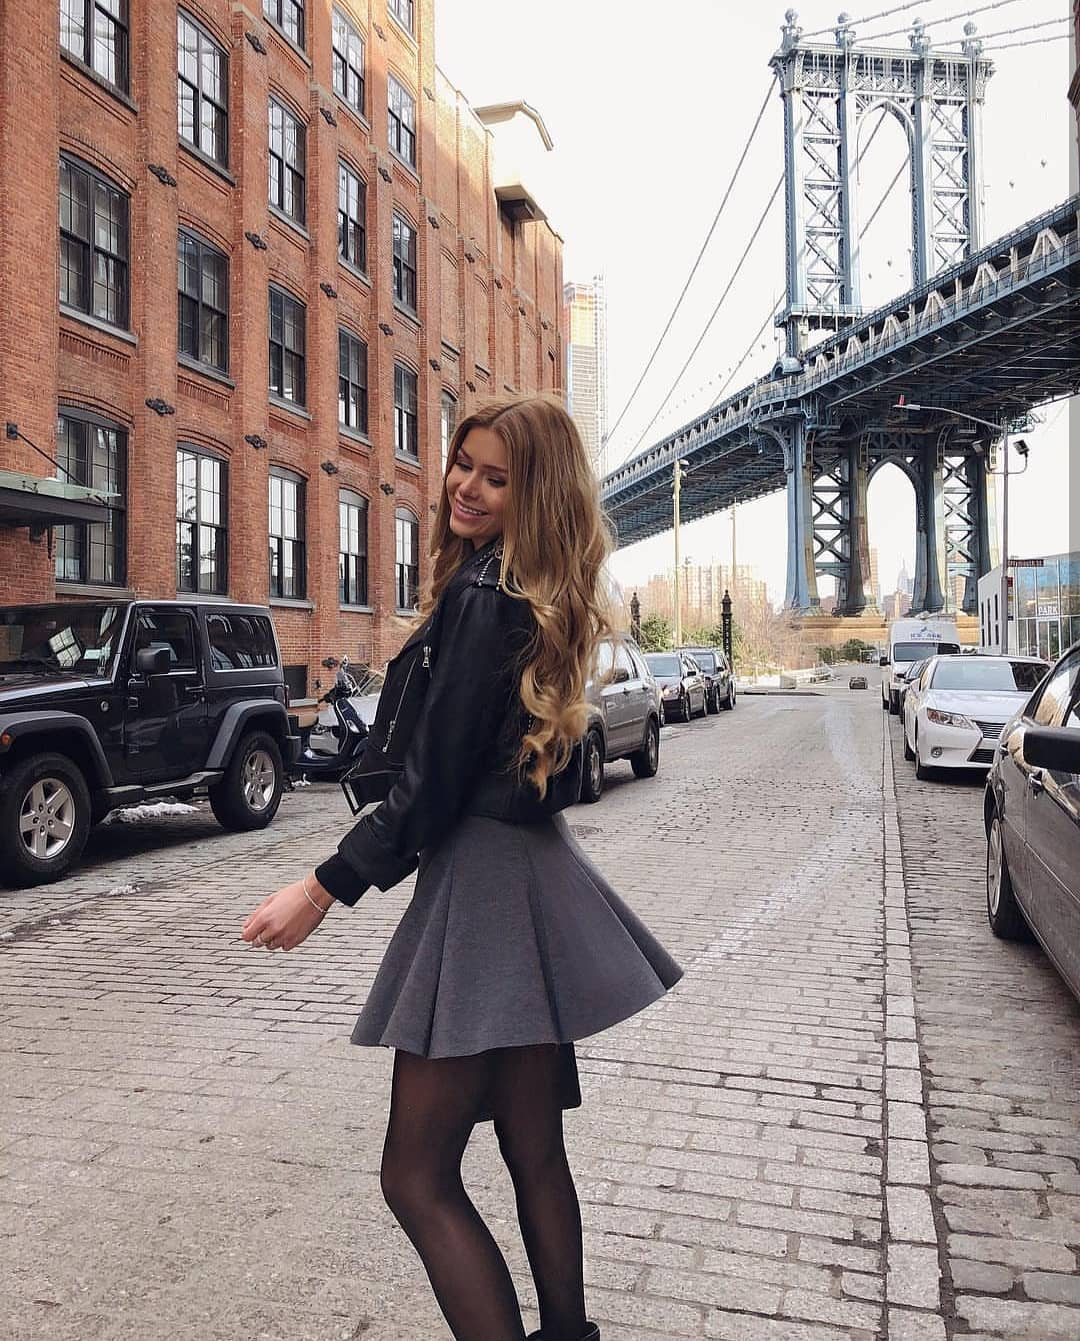 How To Wear Grey Flared Skirt With Black Leather Jacket This Spring 2020